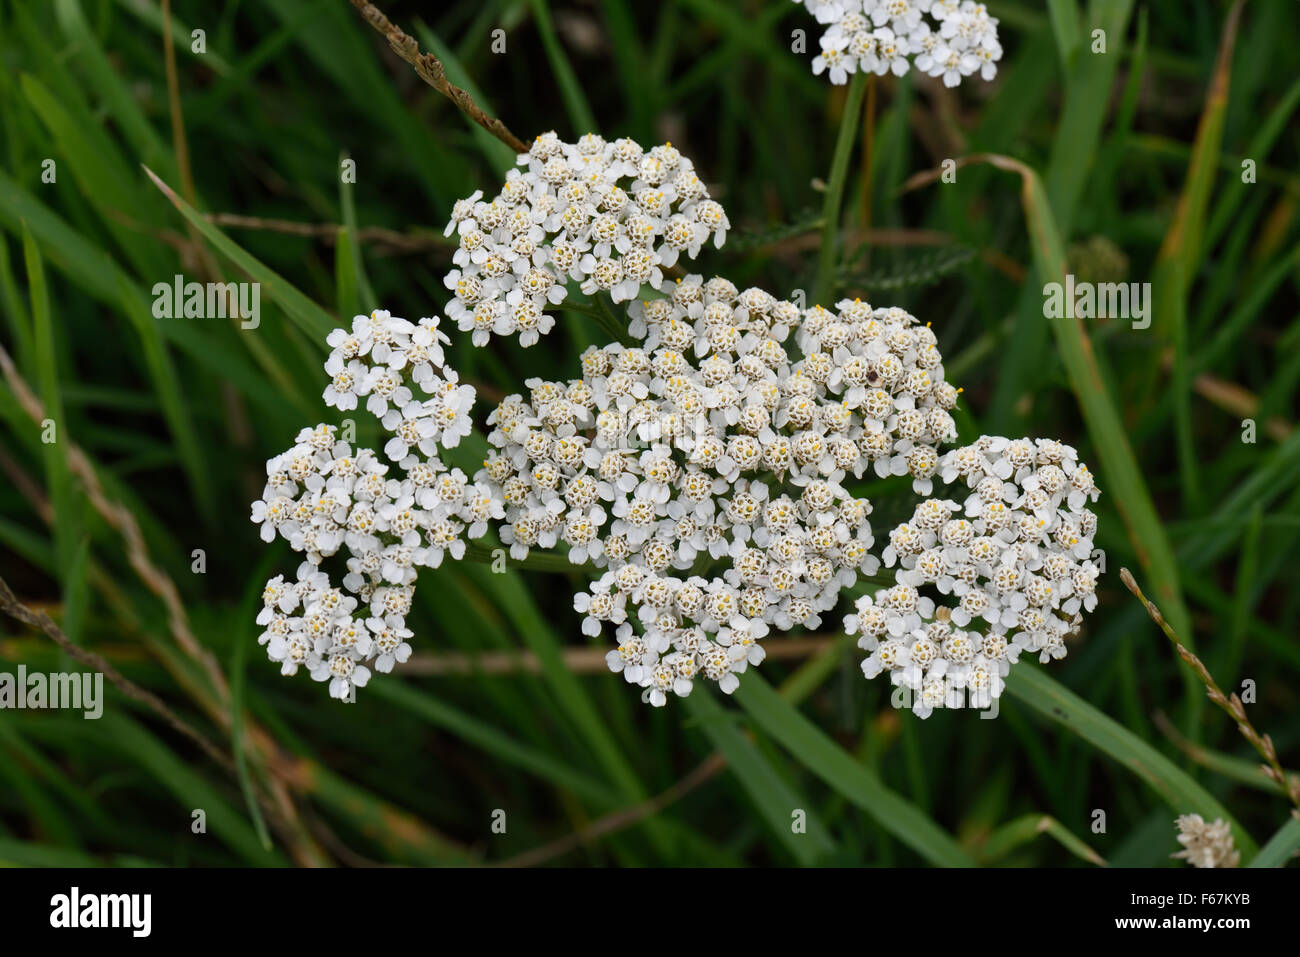 White flower of yarrow, Achillea millefolium, in grassland, Berkshire, August - Stock Image